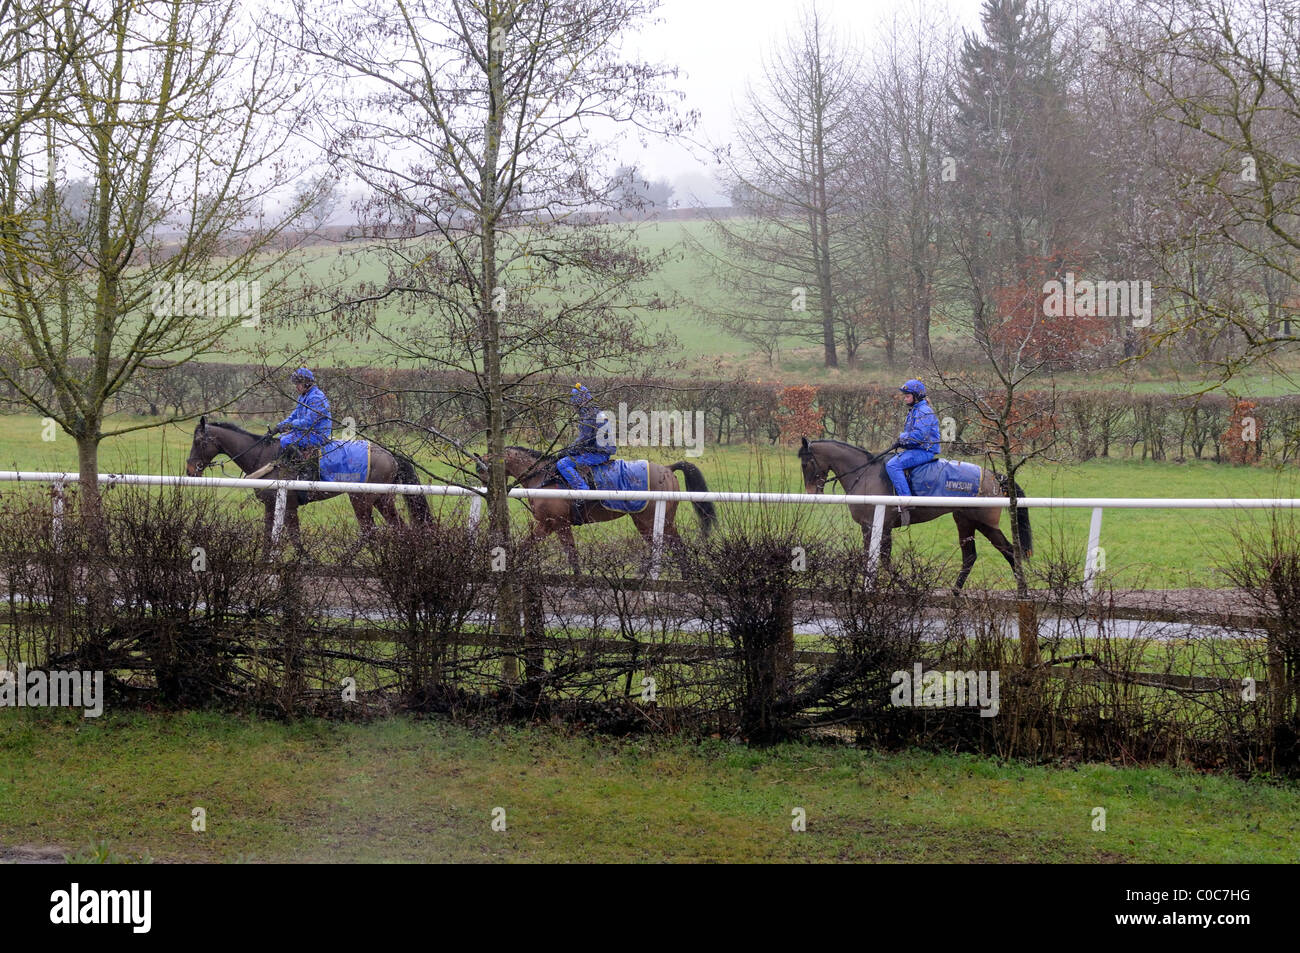 Racehorses being exercised on a wet February morning on the famous trainer Jonjo O'Neill's estate Jackdaws - Stock Image